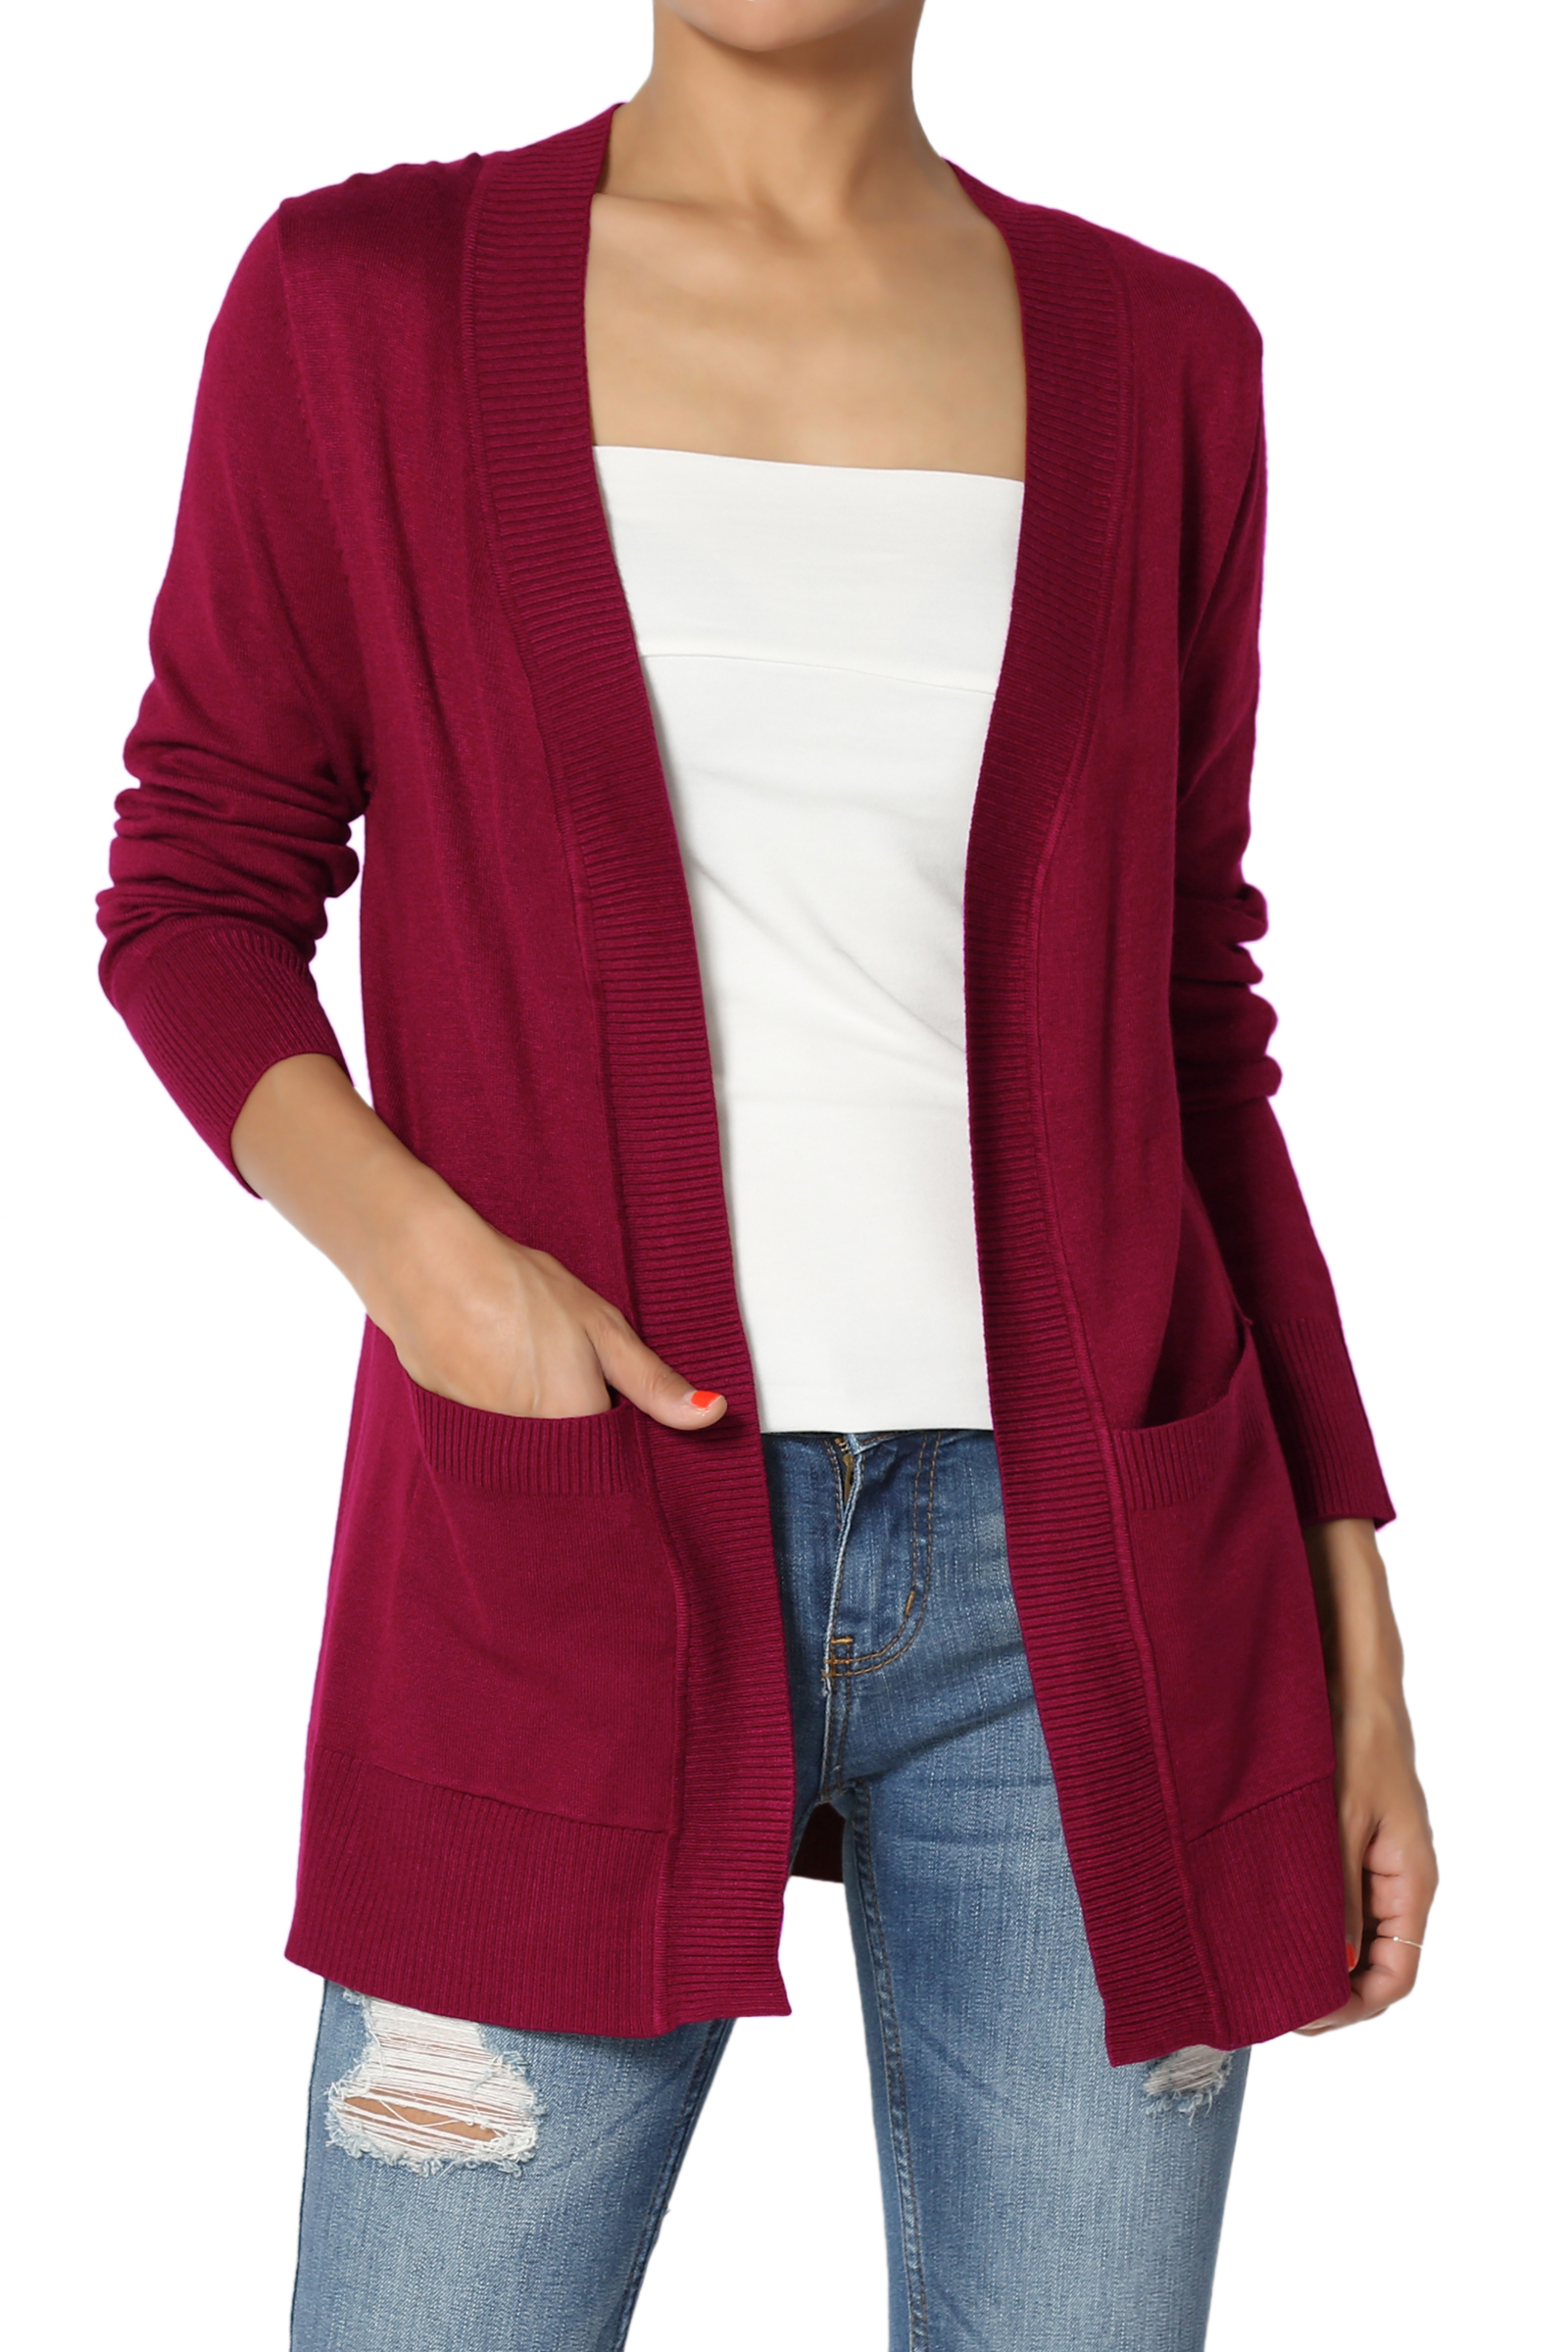 TheMogan Women's Boyfriend Relaxed Fit & Pocket Open Front Knit Sweater Cardigan